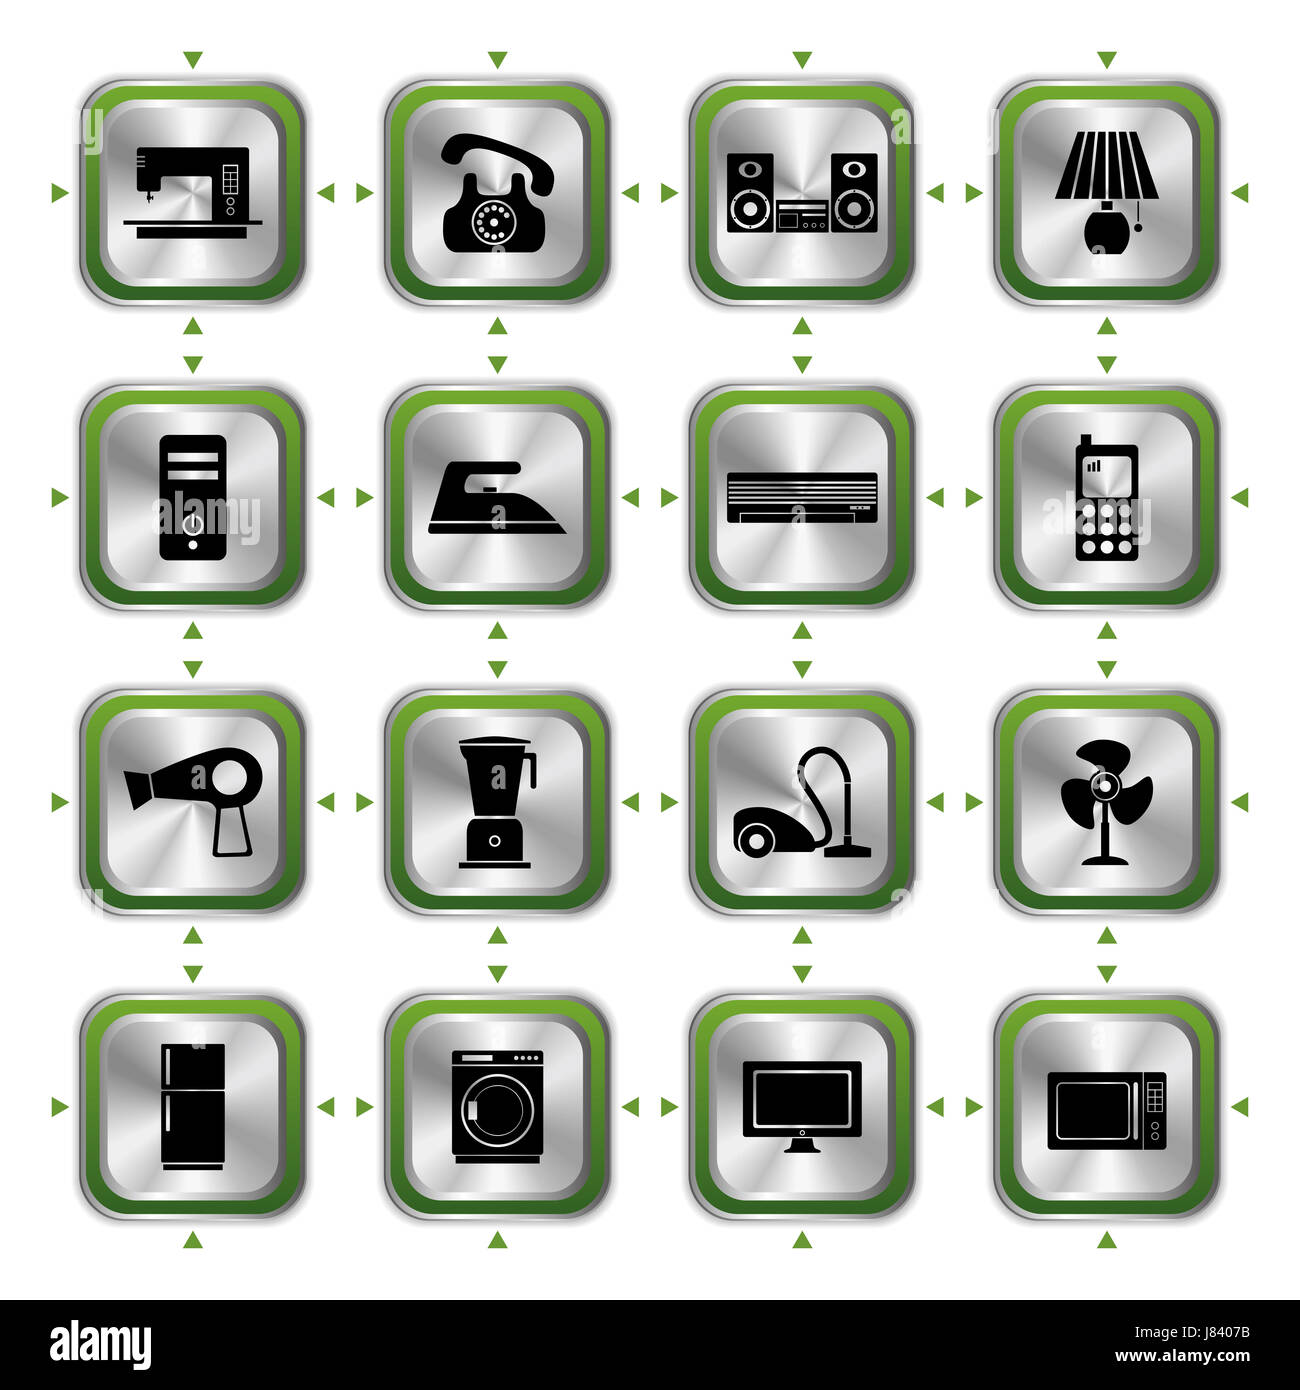 telephone phone industrial electrical icon set appliances computers computer Stock Photo